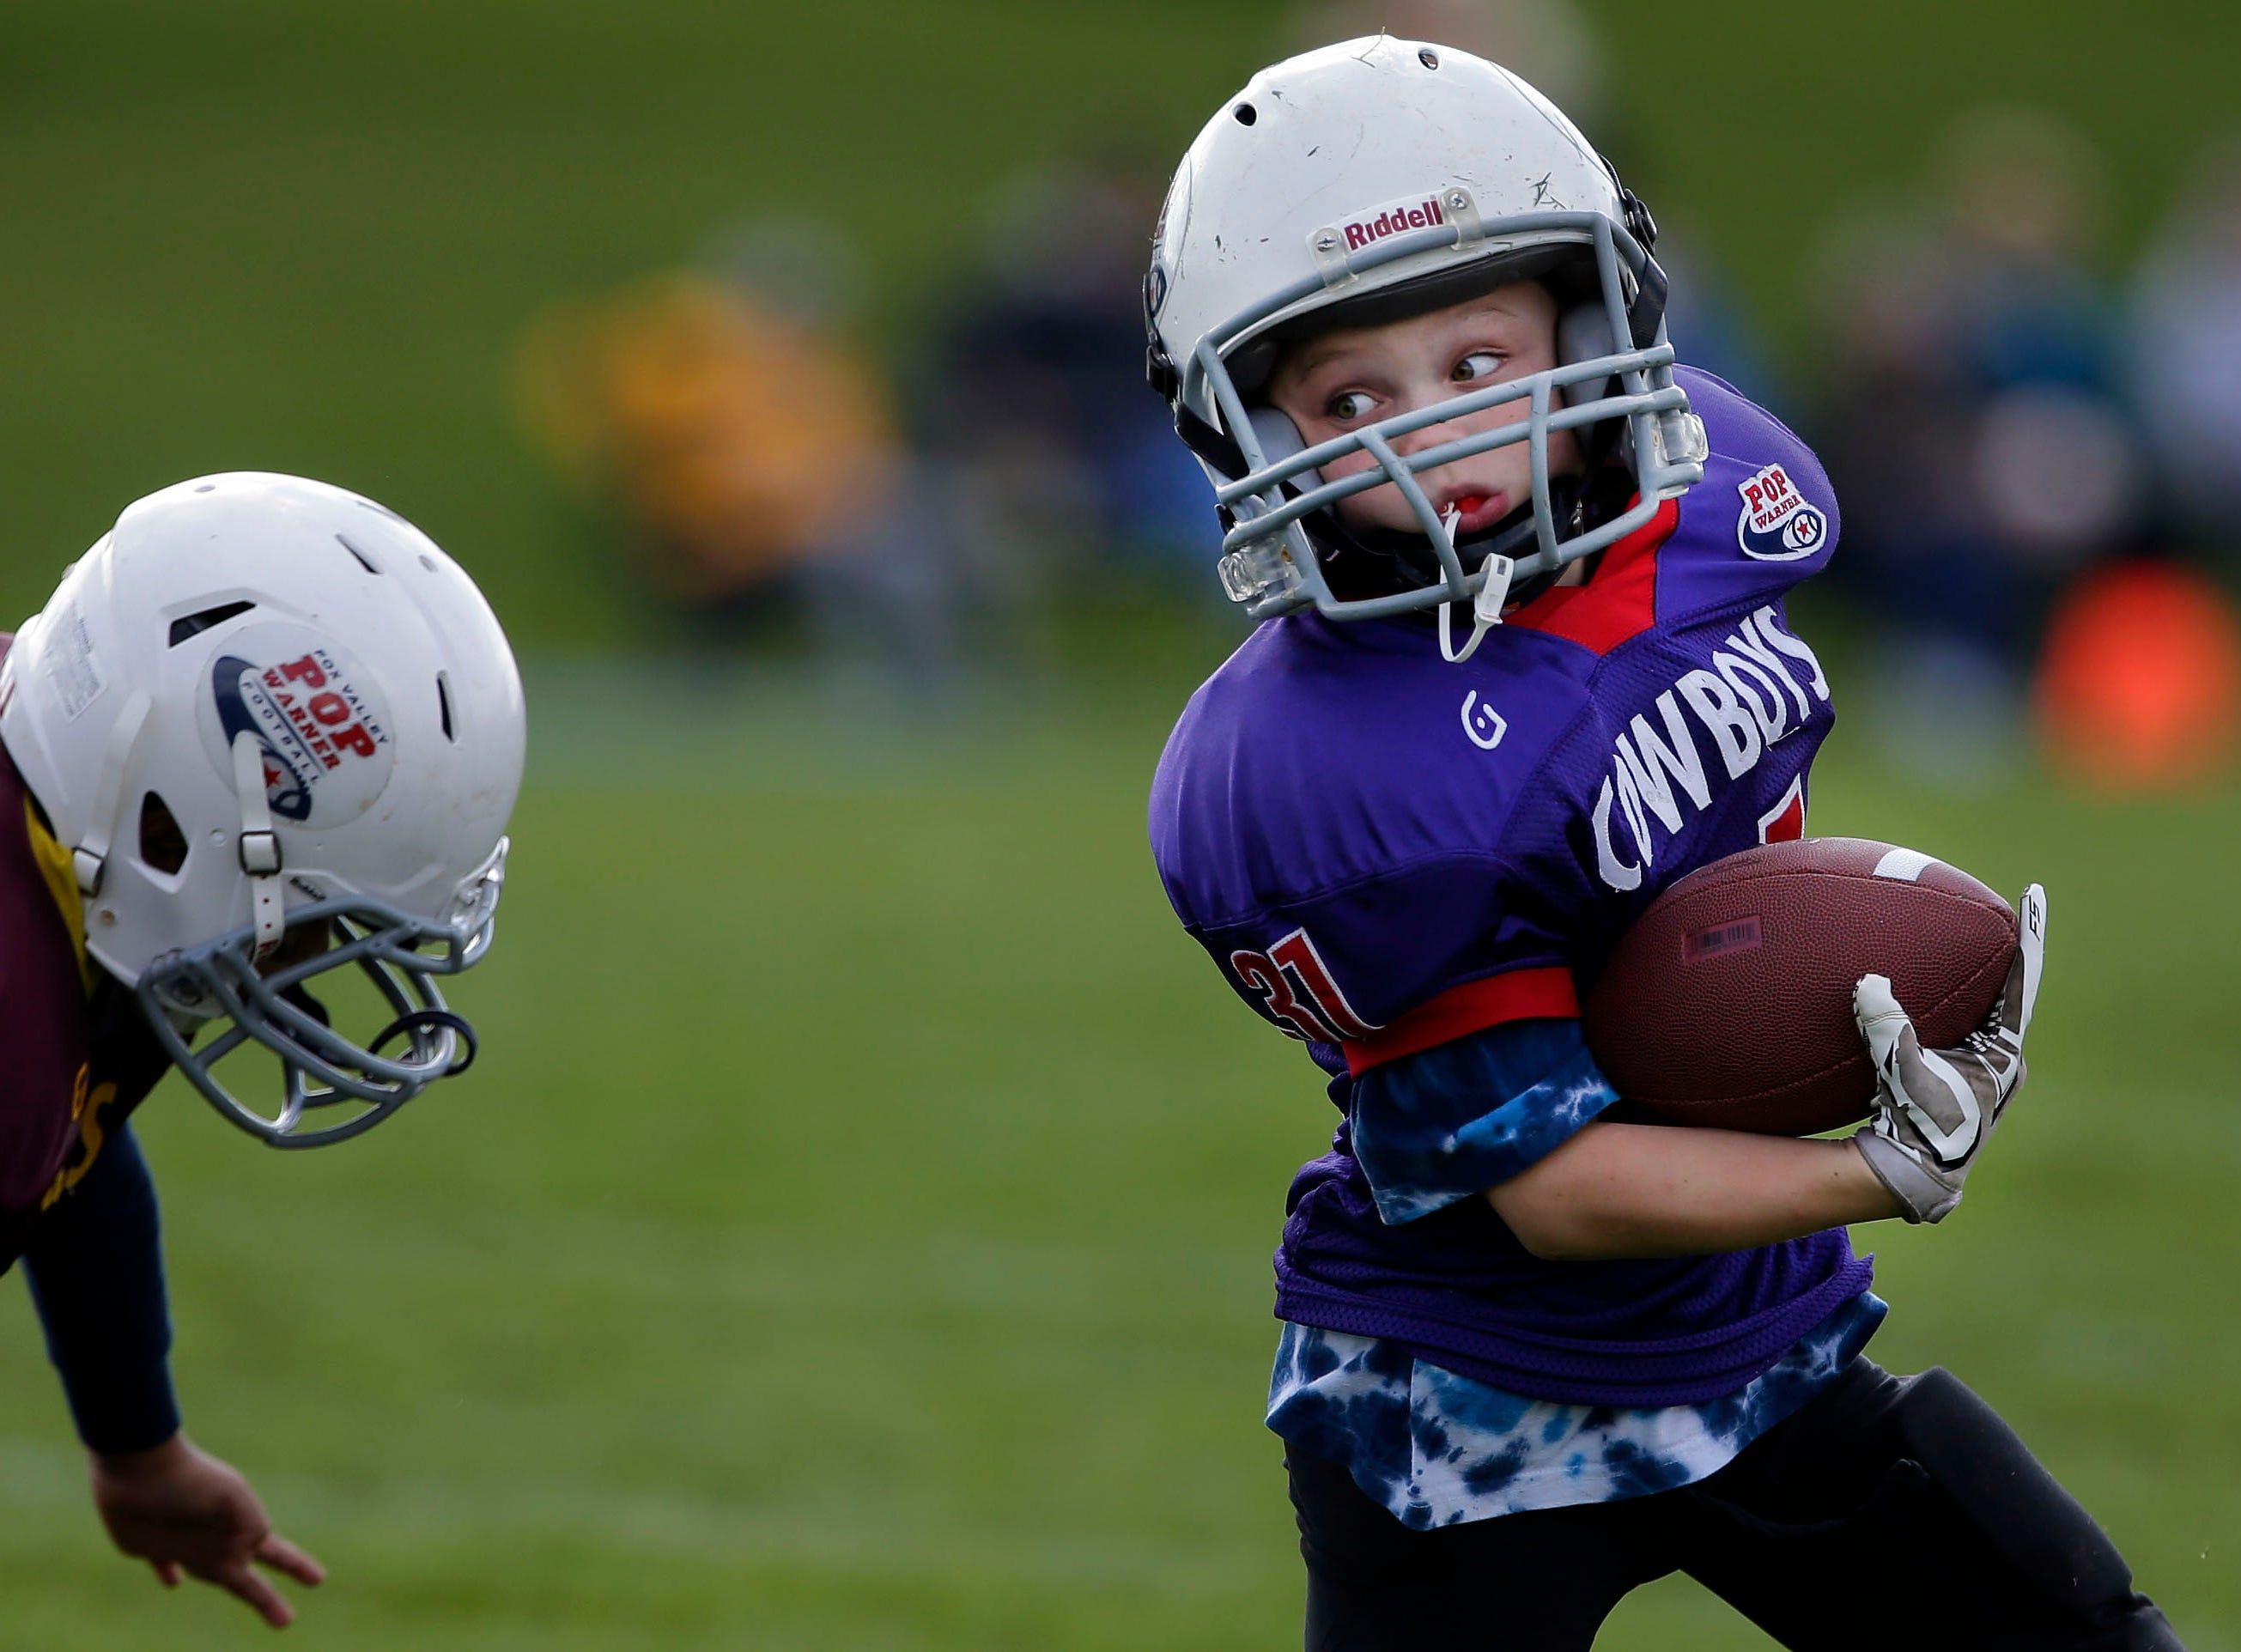 Anthony Reischl of the Cowboys gets away from Richard Ayon of the Foxes as Fox Valley Pop Warner Football opens the season Saturday, September 8, 2018, at Plamann Park in Grand Chute, Wis.